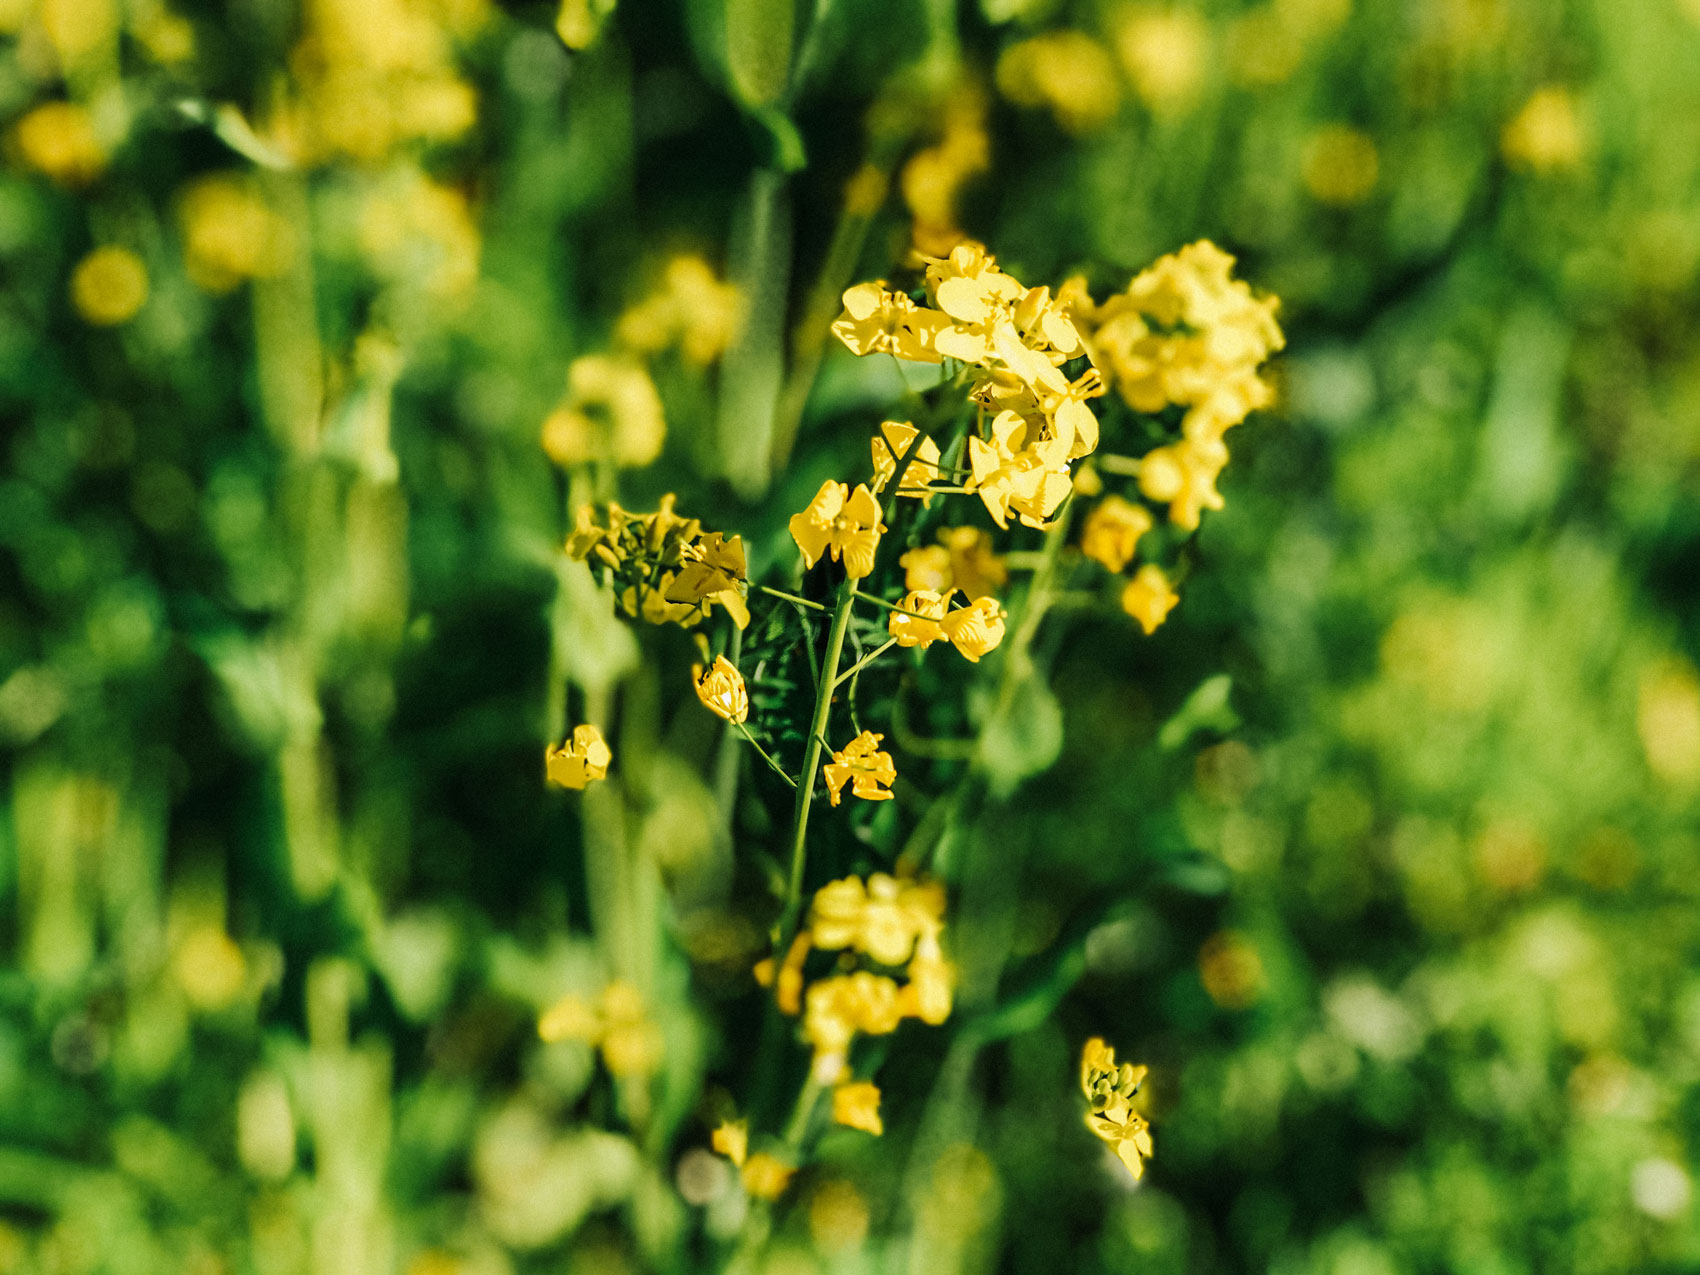 Yellow flowers growing freely in nature.